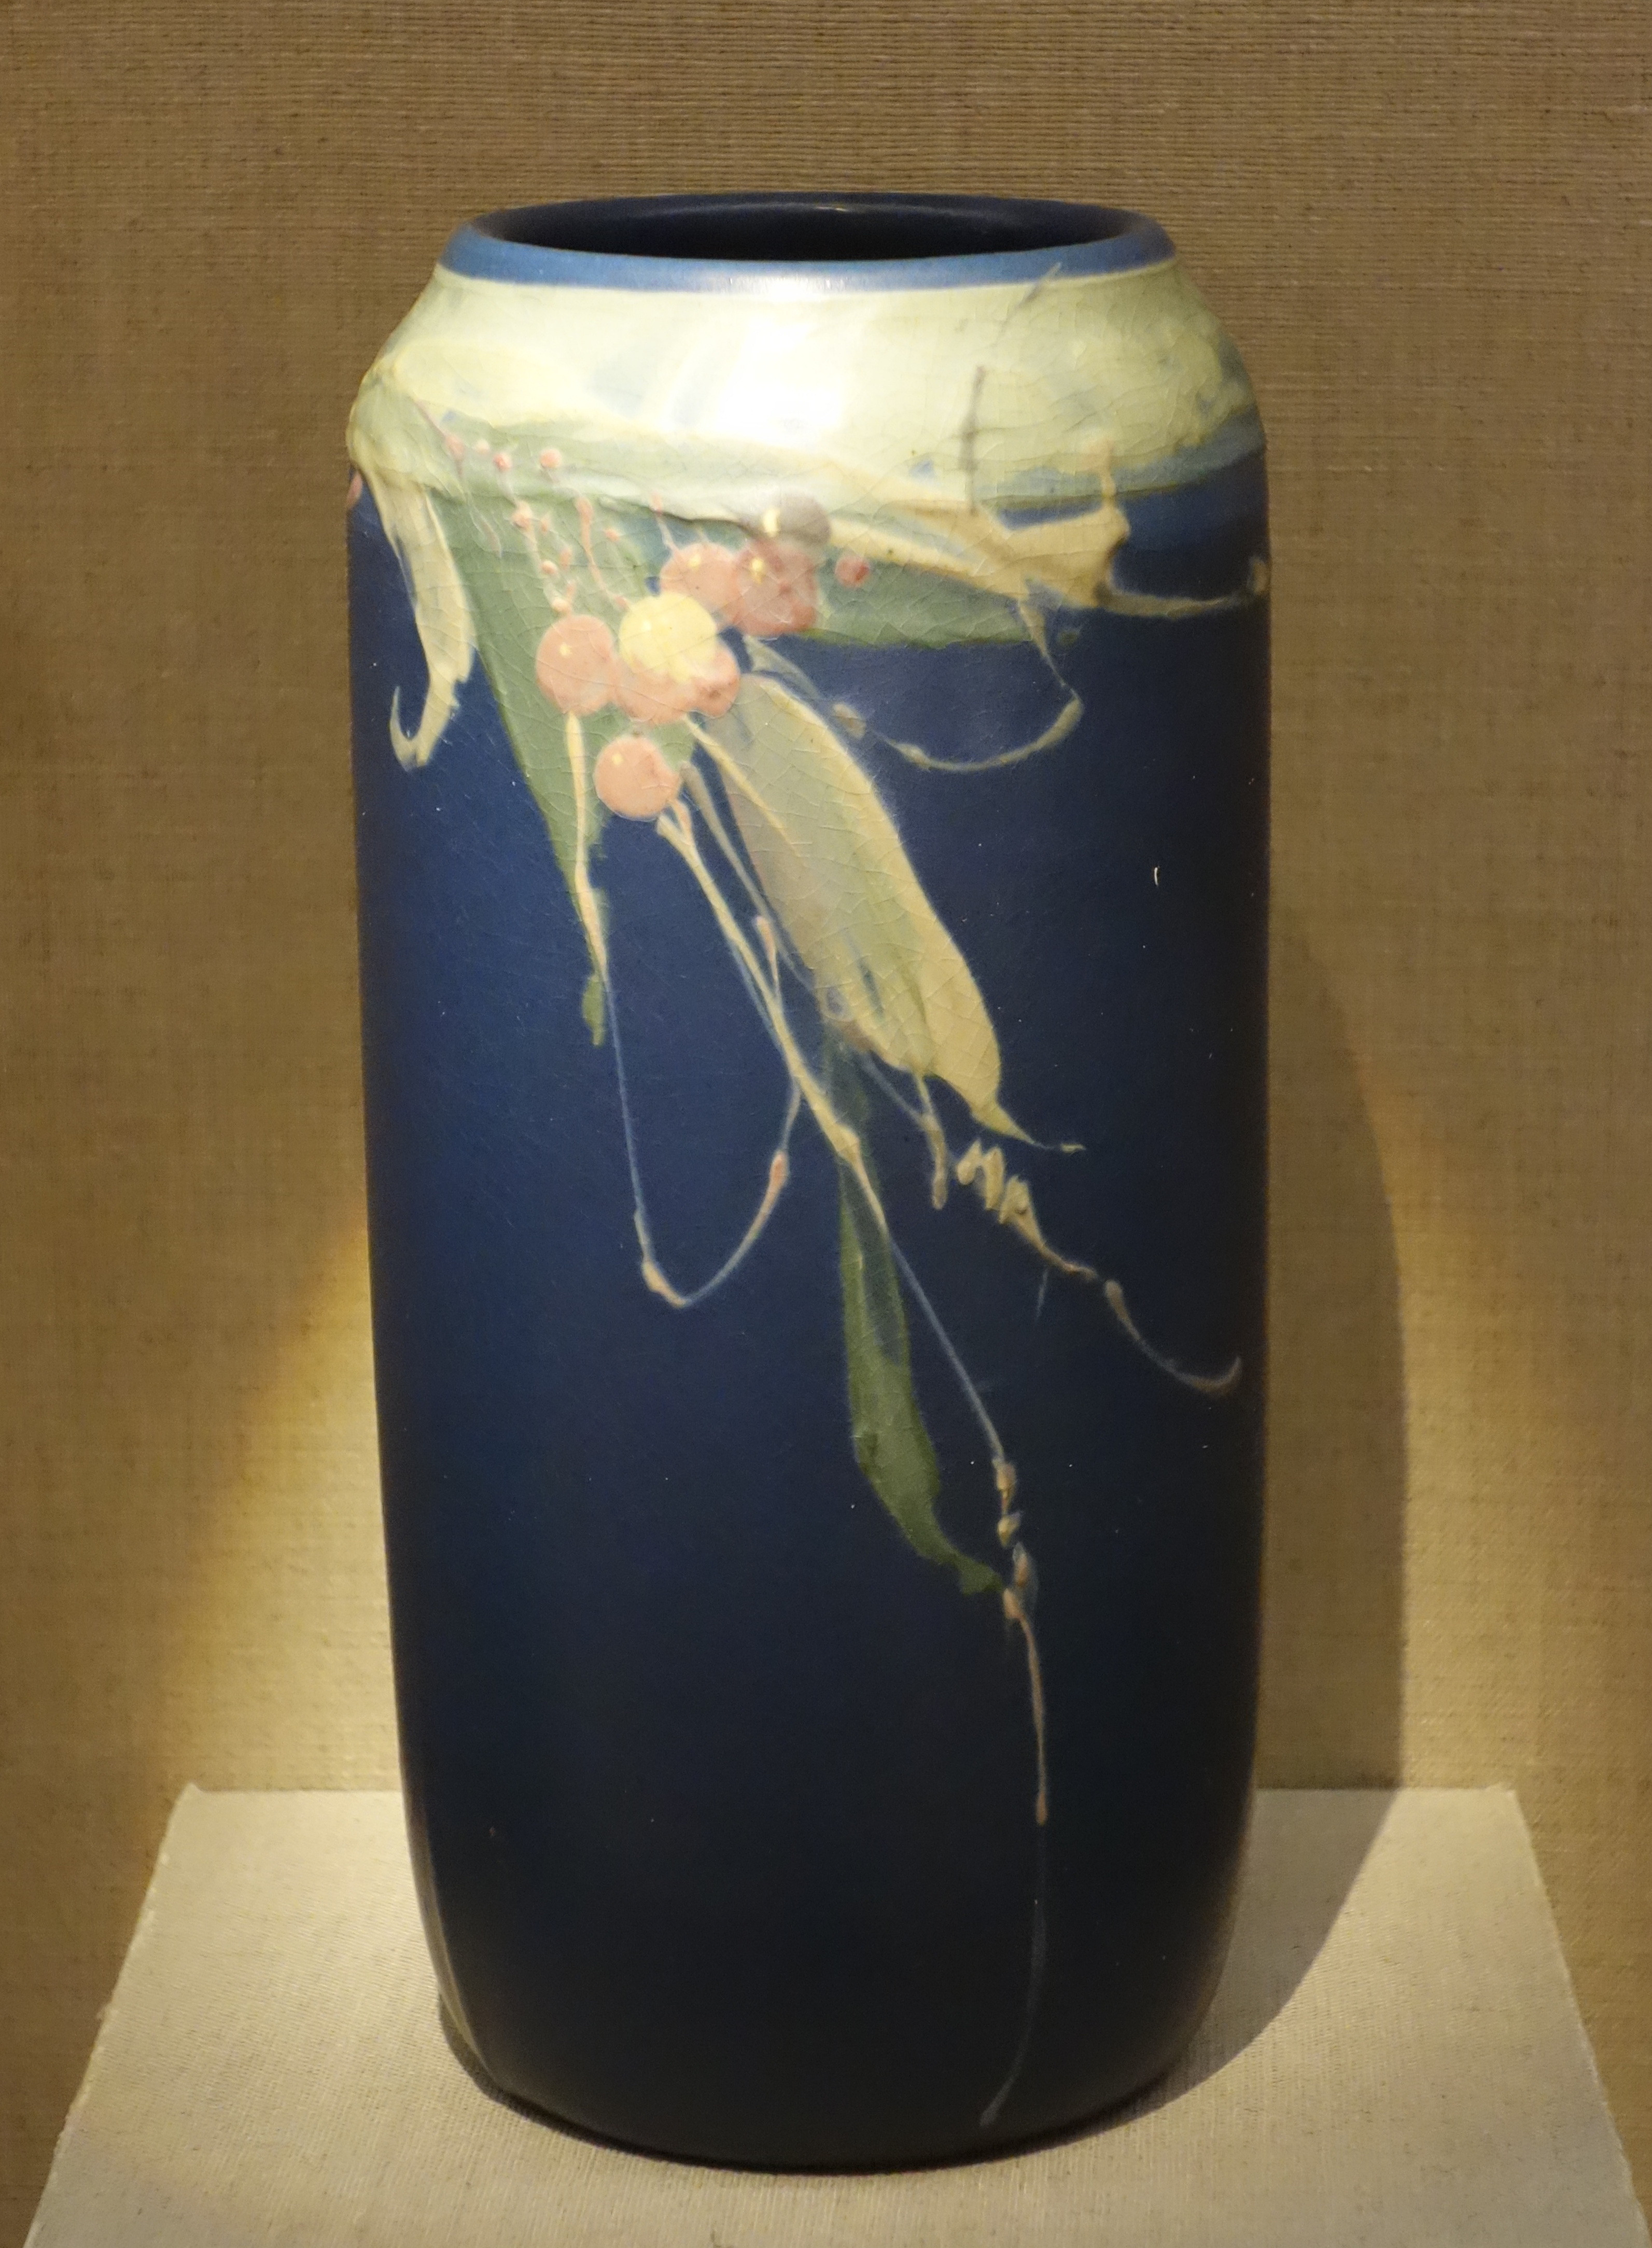 Pottery Craft Usa Vase Of American Art Pottery Wikipedia In Glazed Earthenware Vase Weller Pottery Ca 1905